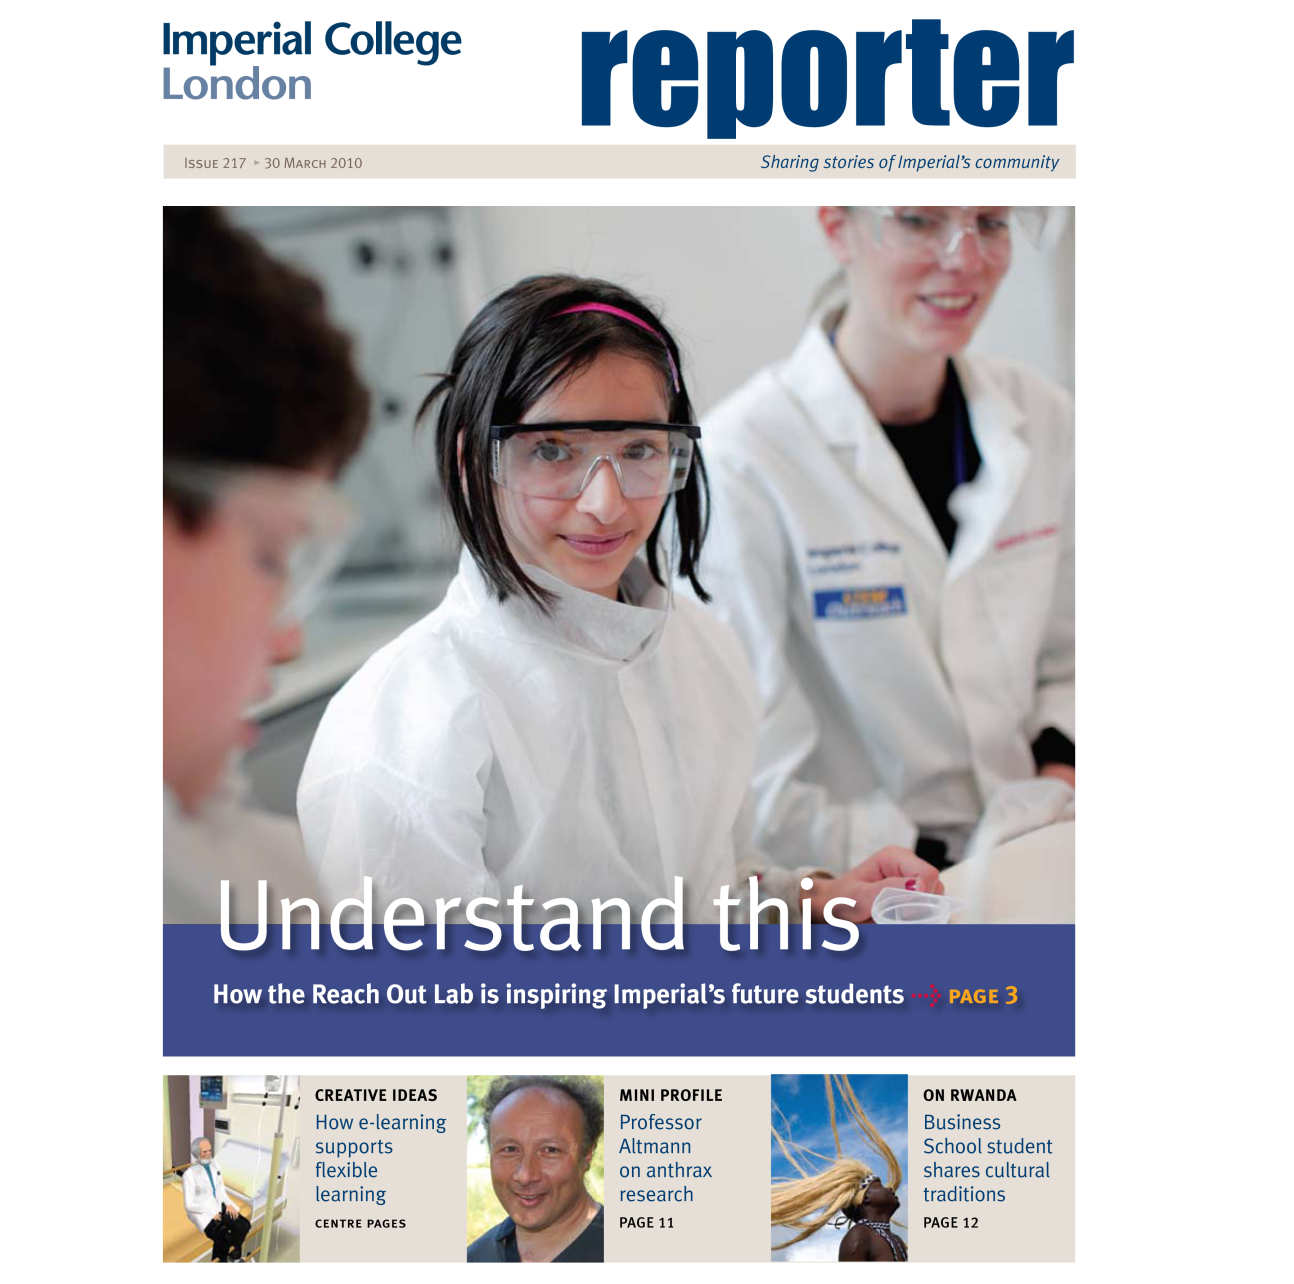 Issue 217 - 30 March 2010